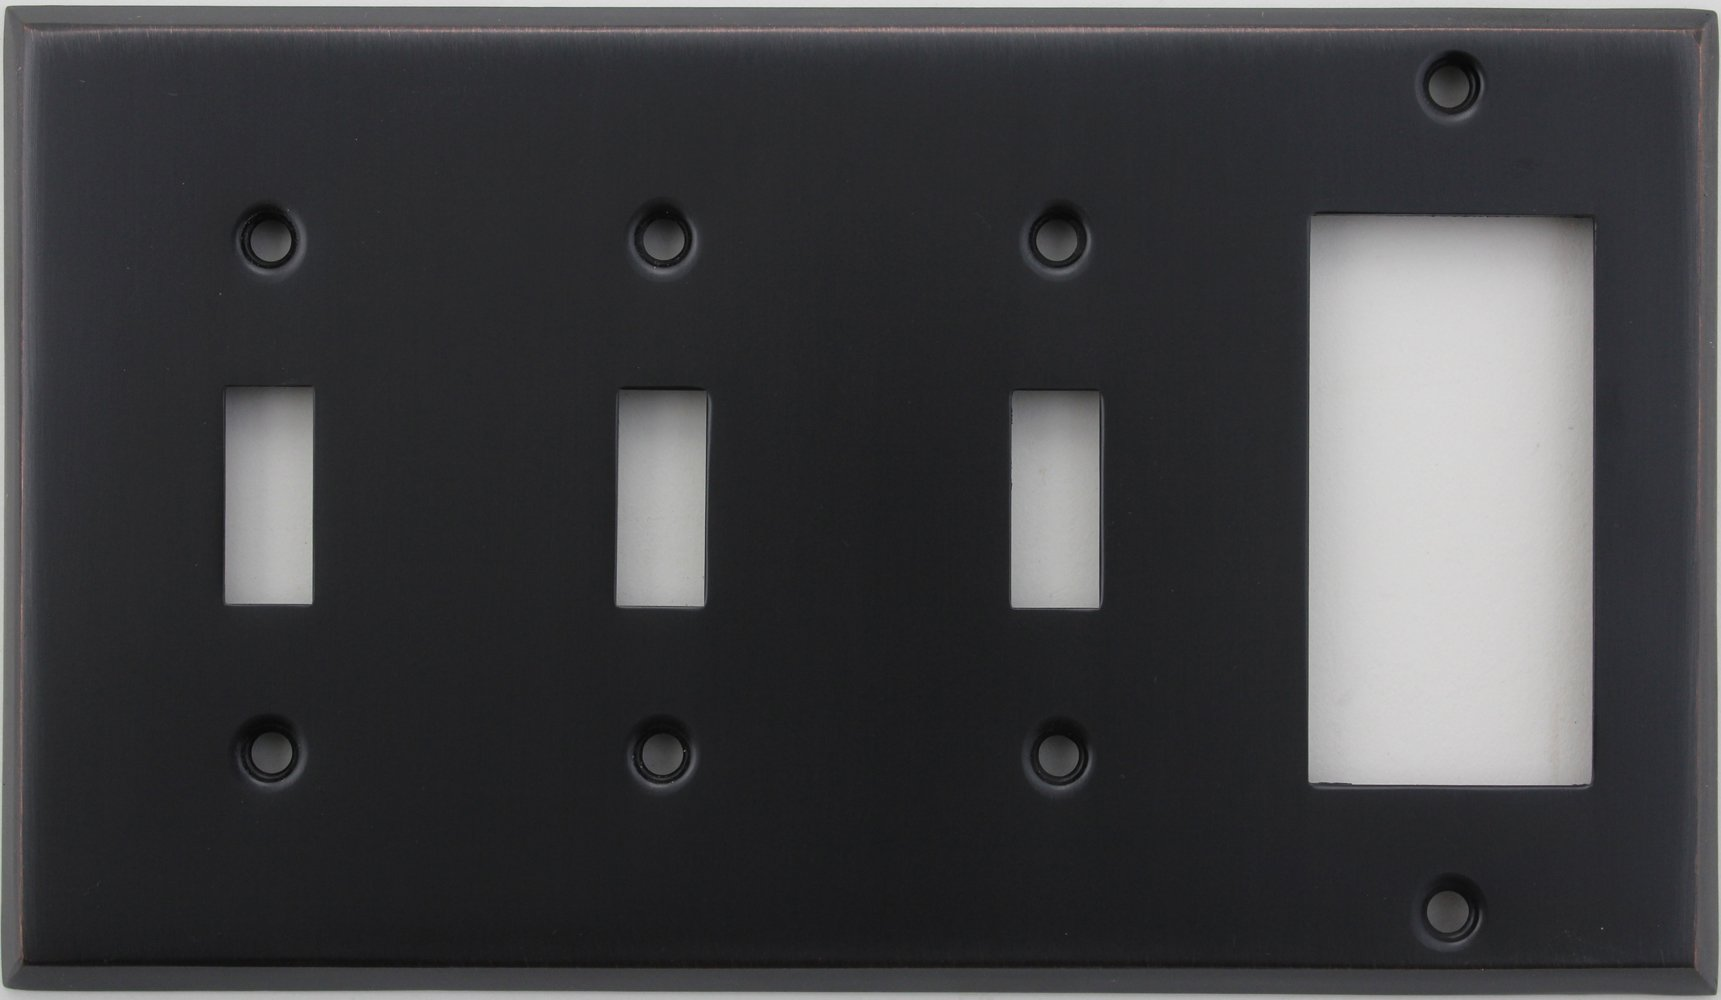 Classic Accents Stamped Steel Oil Rubbed Bronze Four Gang Wall Plate - Three Toggle Light Switch Opening One GFI/Rocker Opening